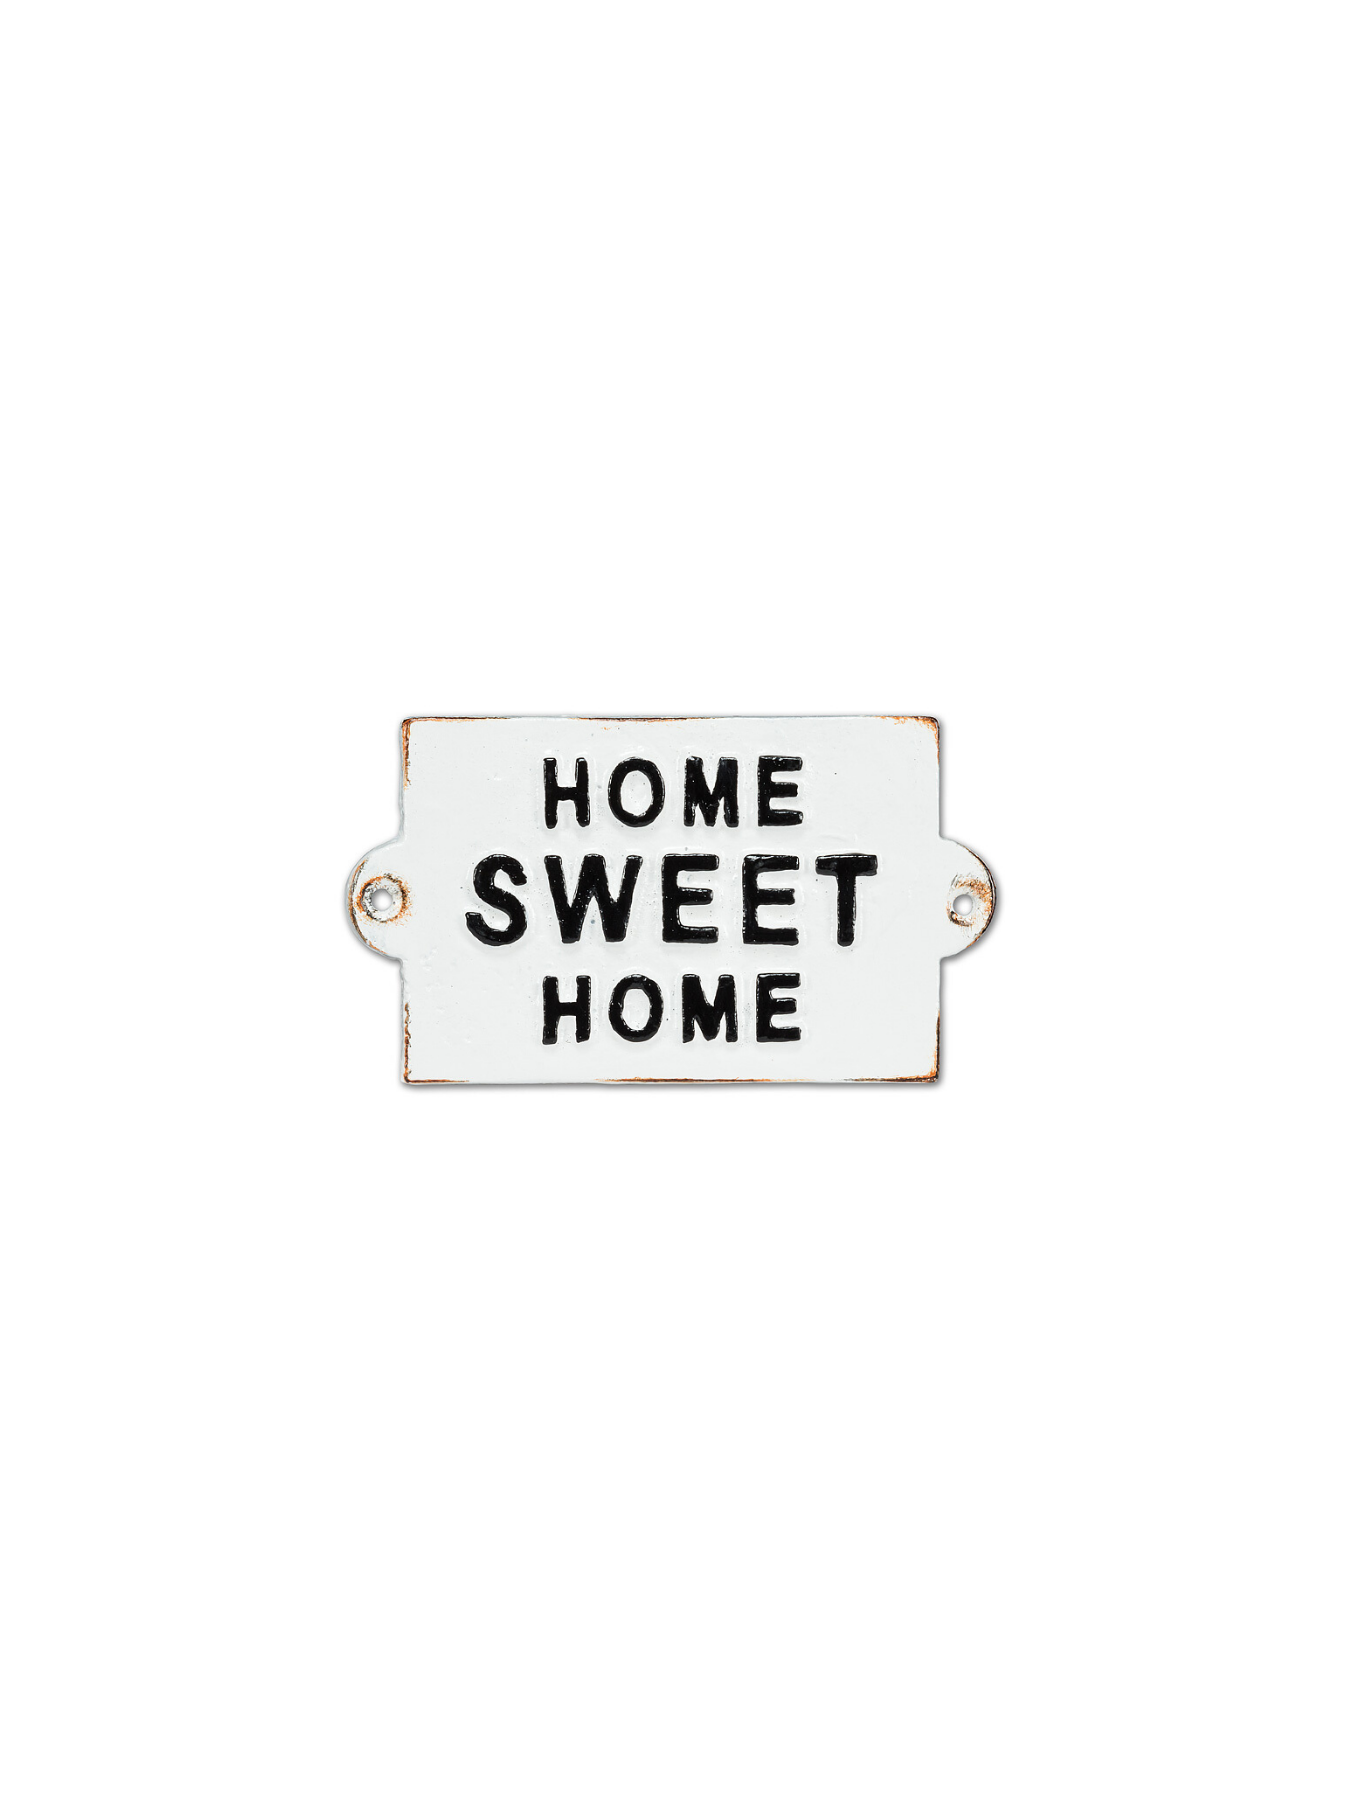 Abbott Home Sweet Home Place Sign